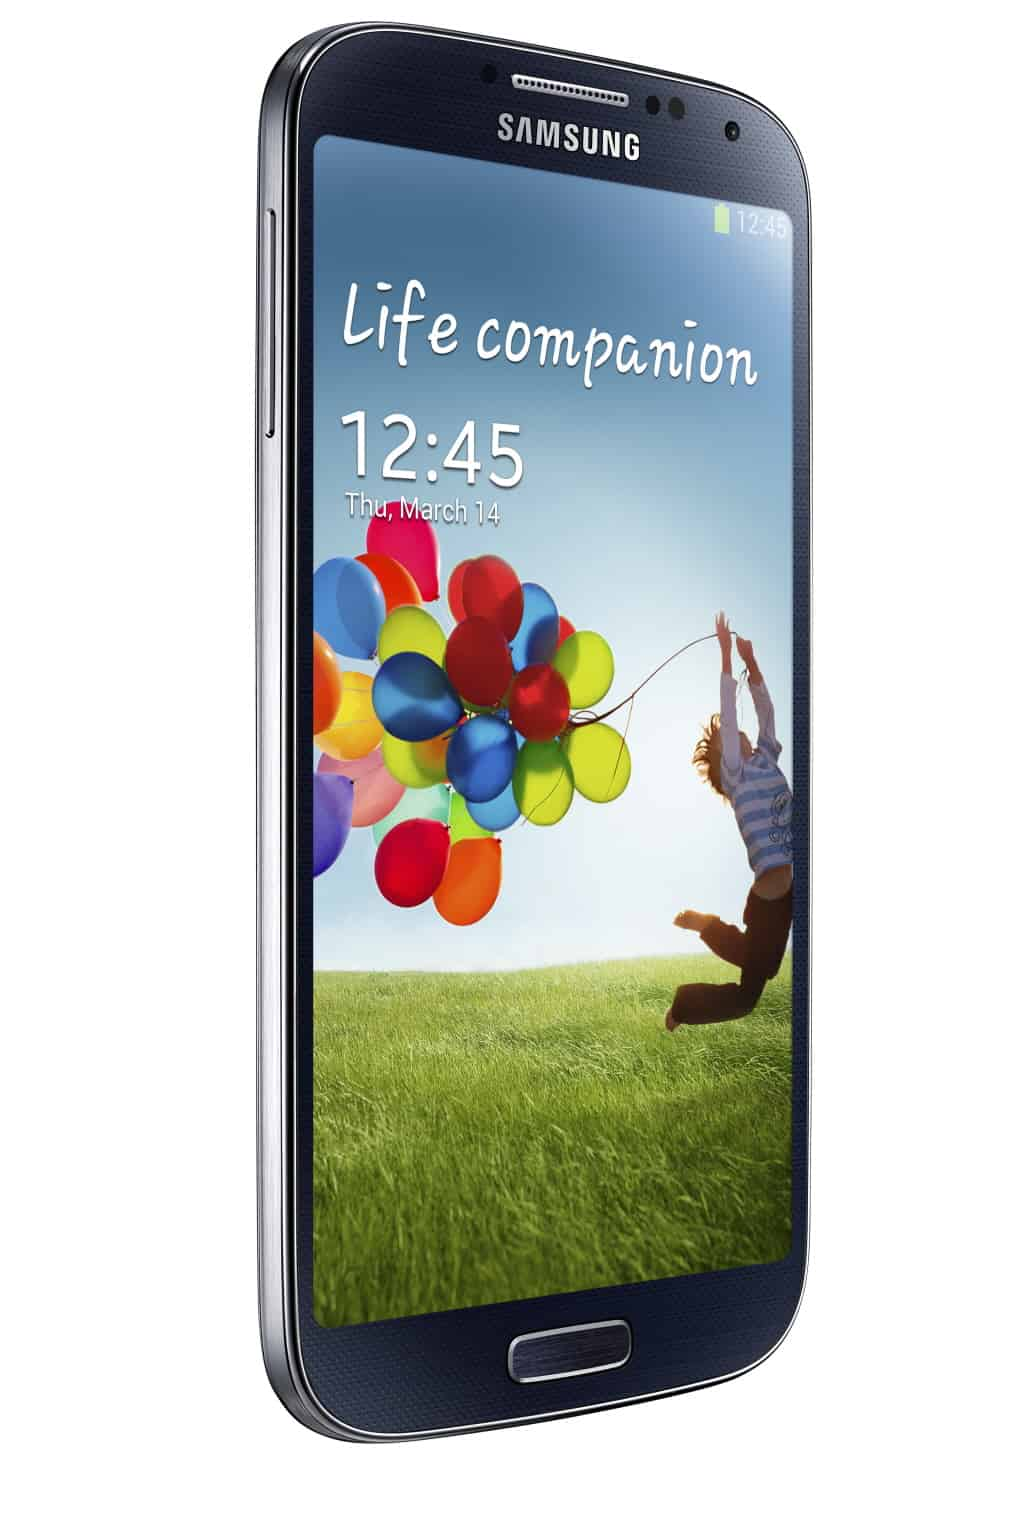 GALAXY-S-4-Product-Image-5